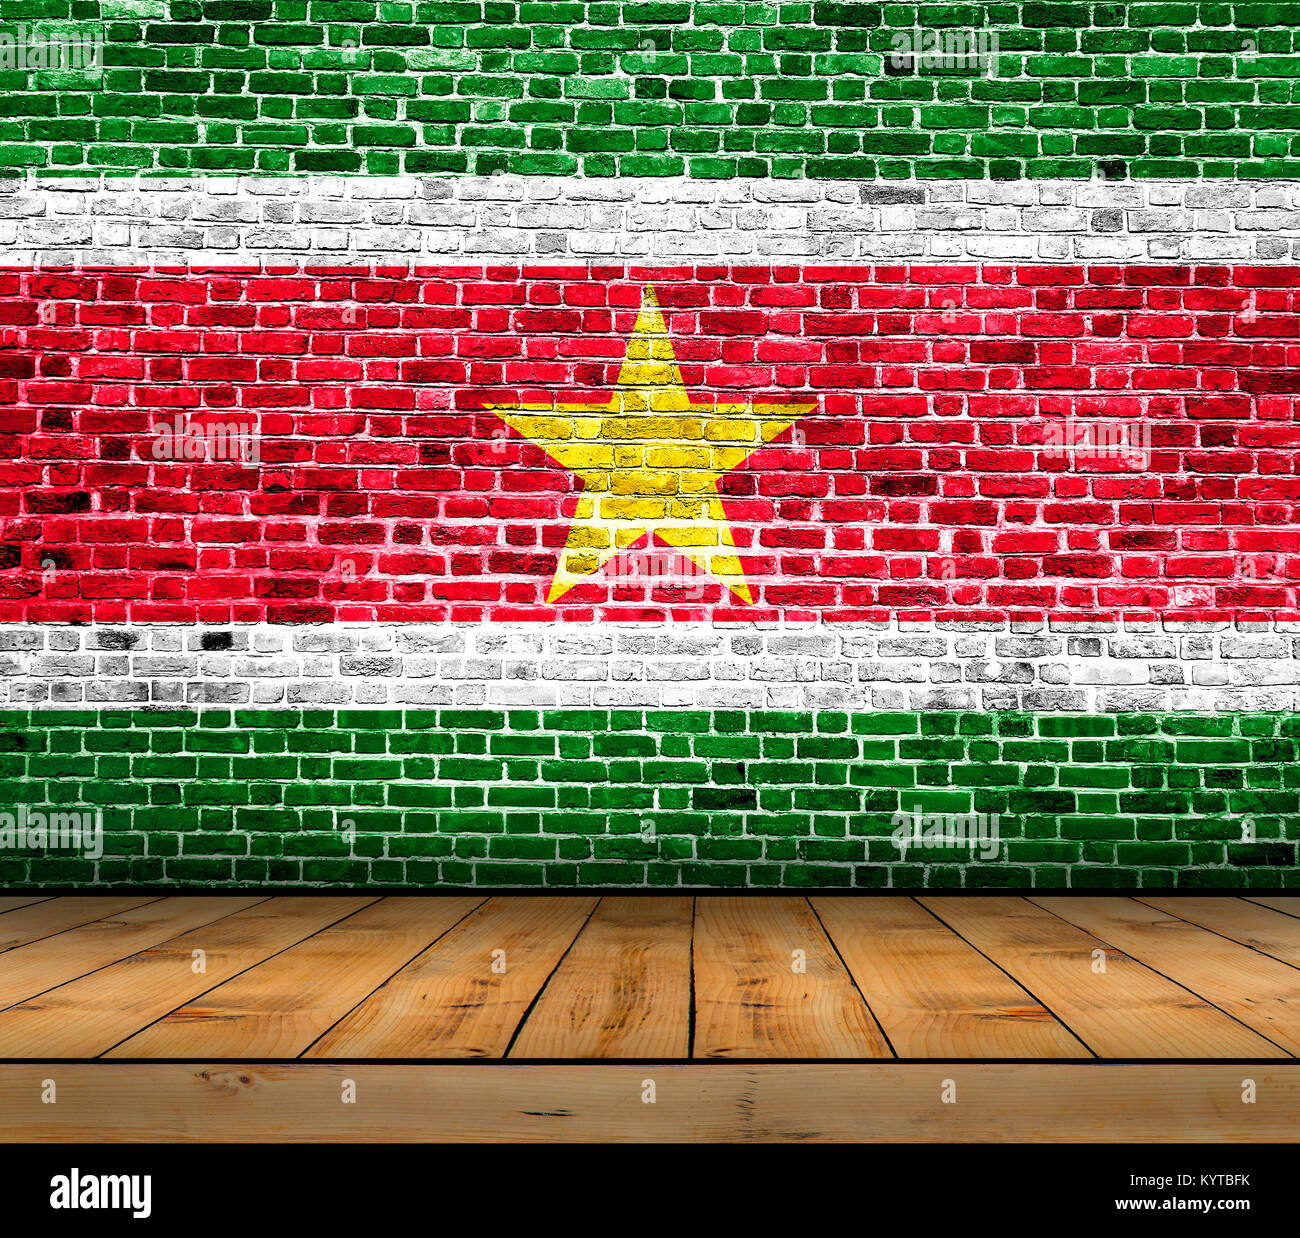 Suriname flag painted on brick wall with wooden floor - Stock Image